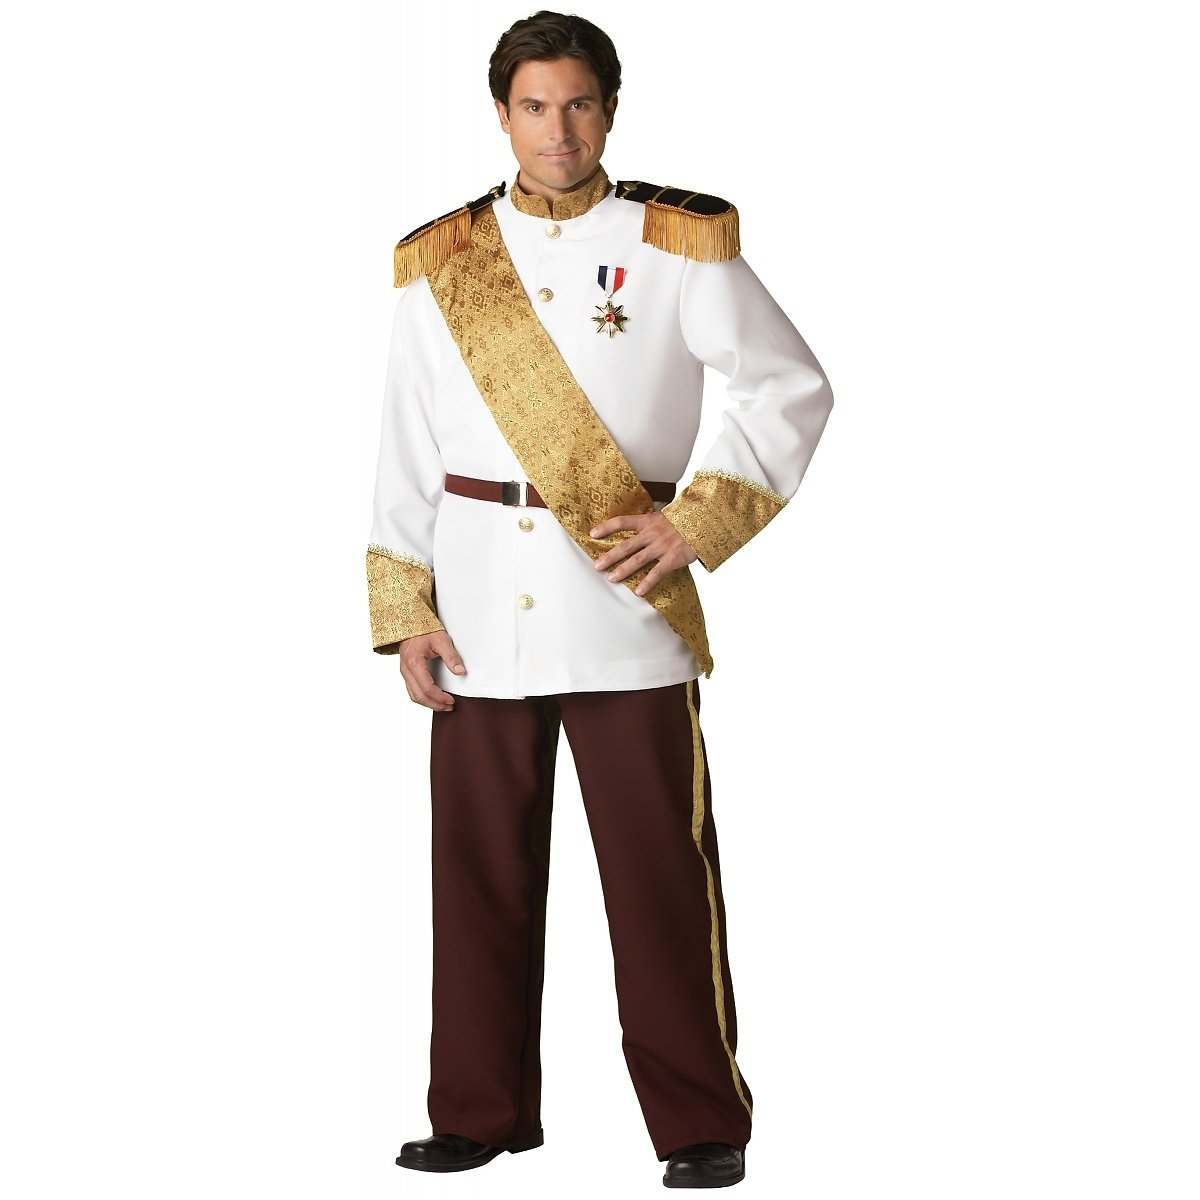 InCharacter Costumes Men's Plus Size Prince Charming Costume, White/Burgundy/Gold, XXX-Large